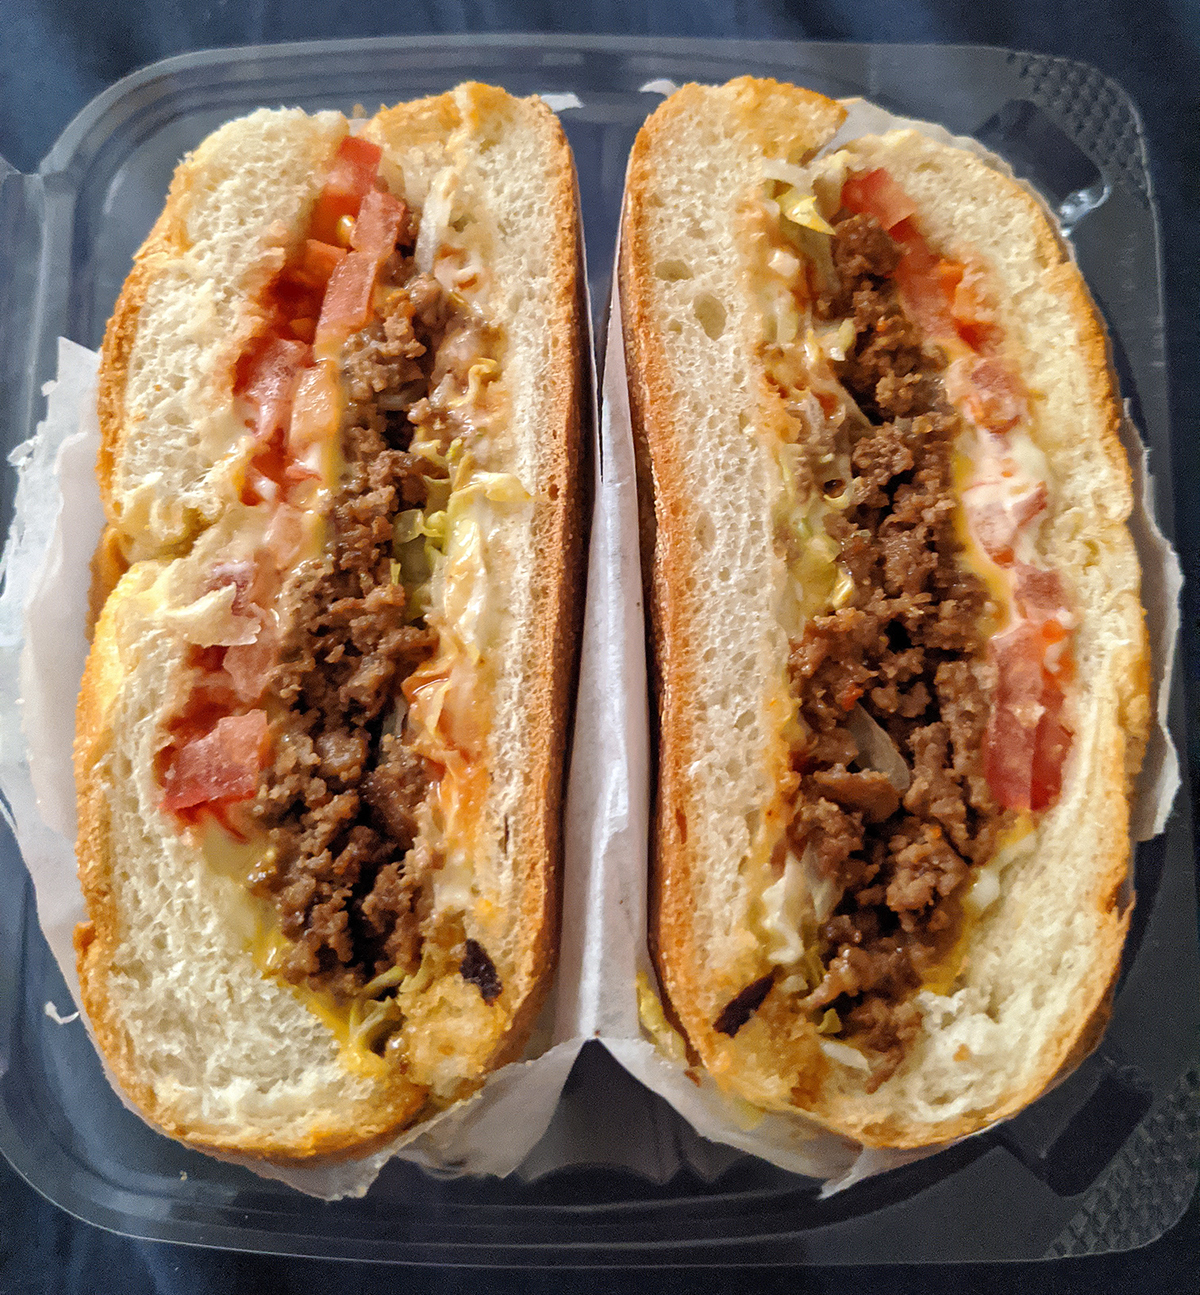 Chopped cheese sandwich from a NYC bodega